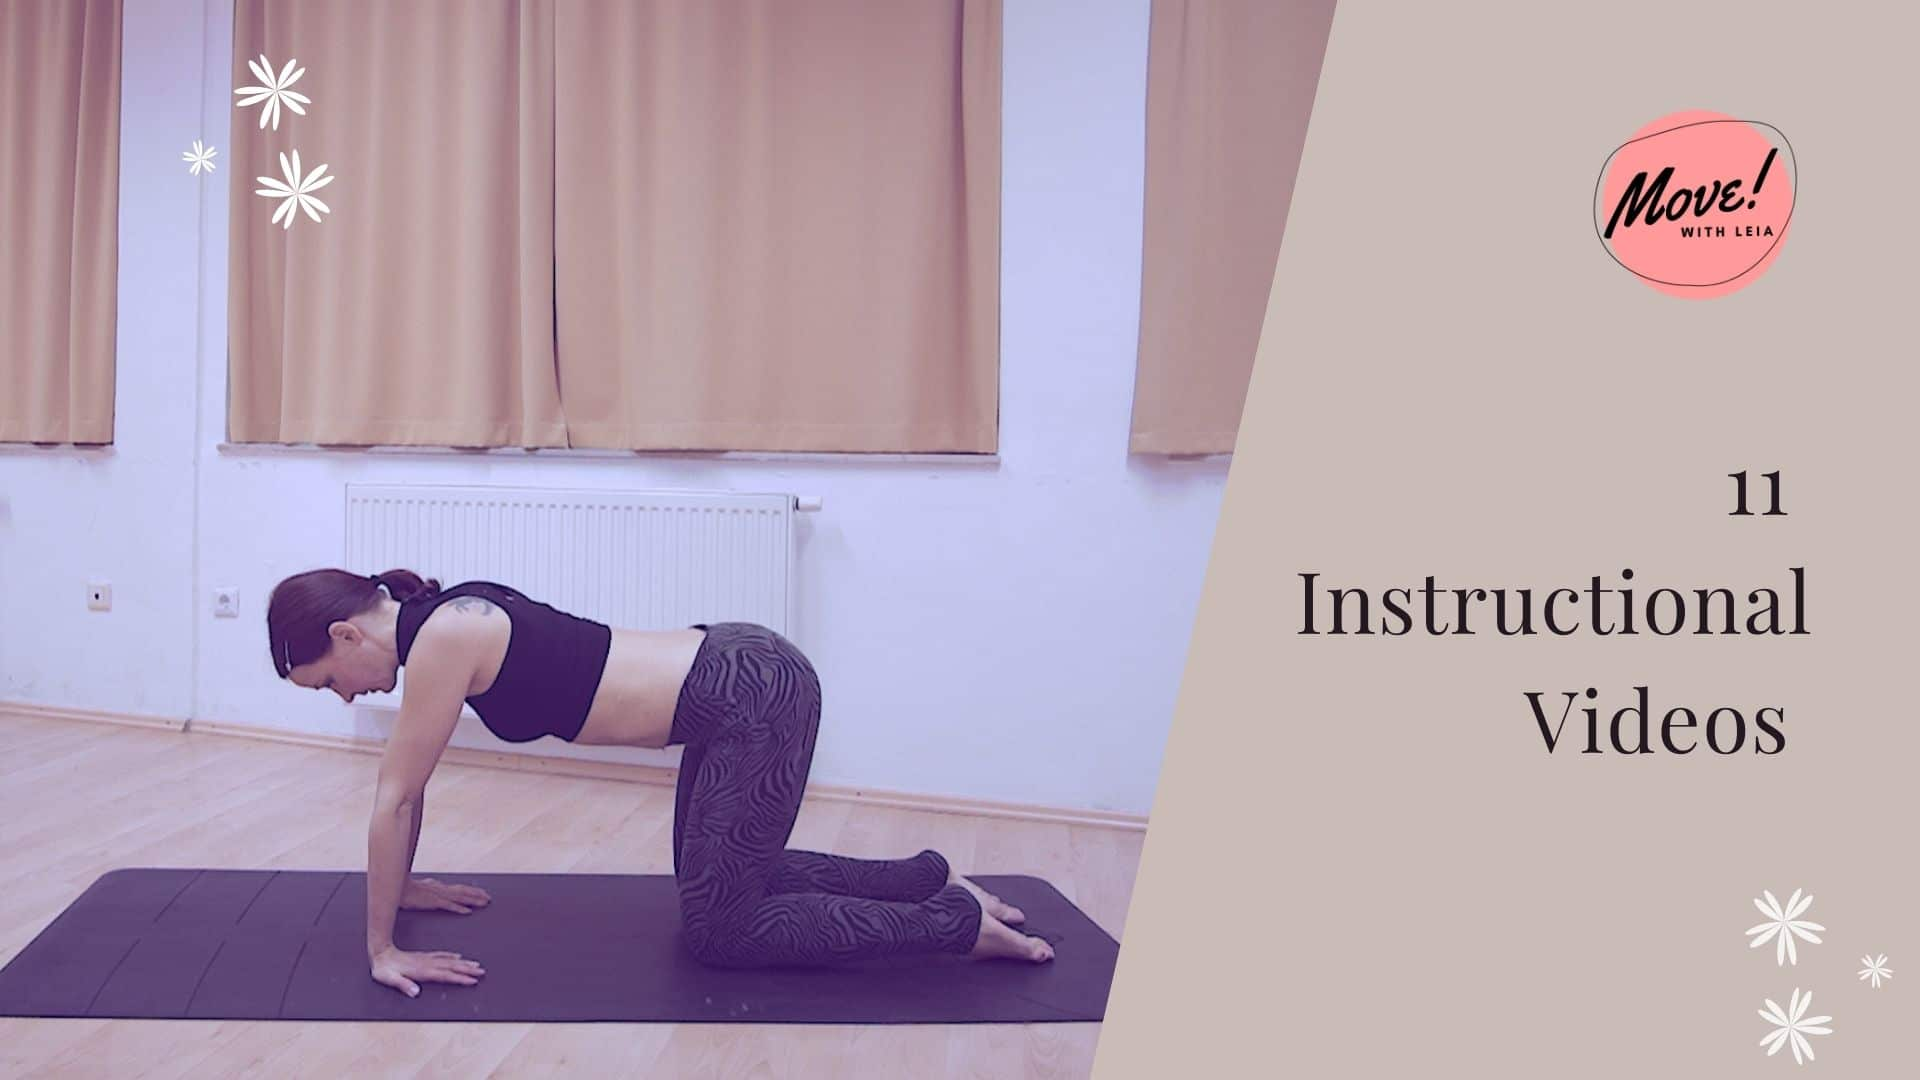 Instuctional videos, Move with Leia, The Core Vibe